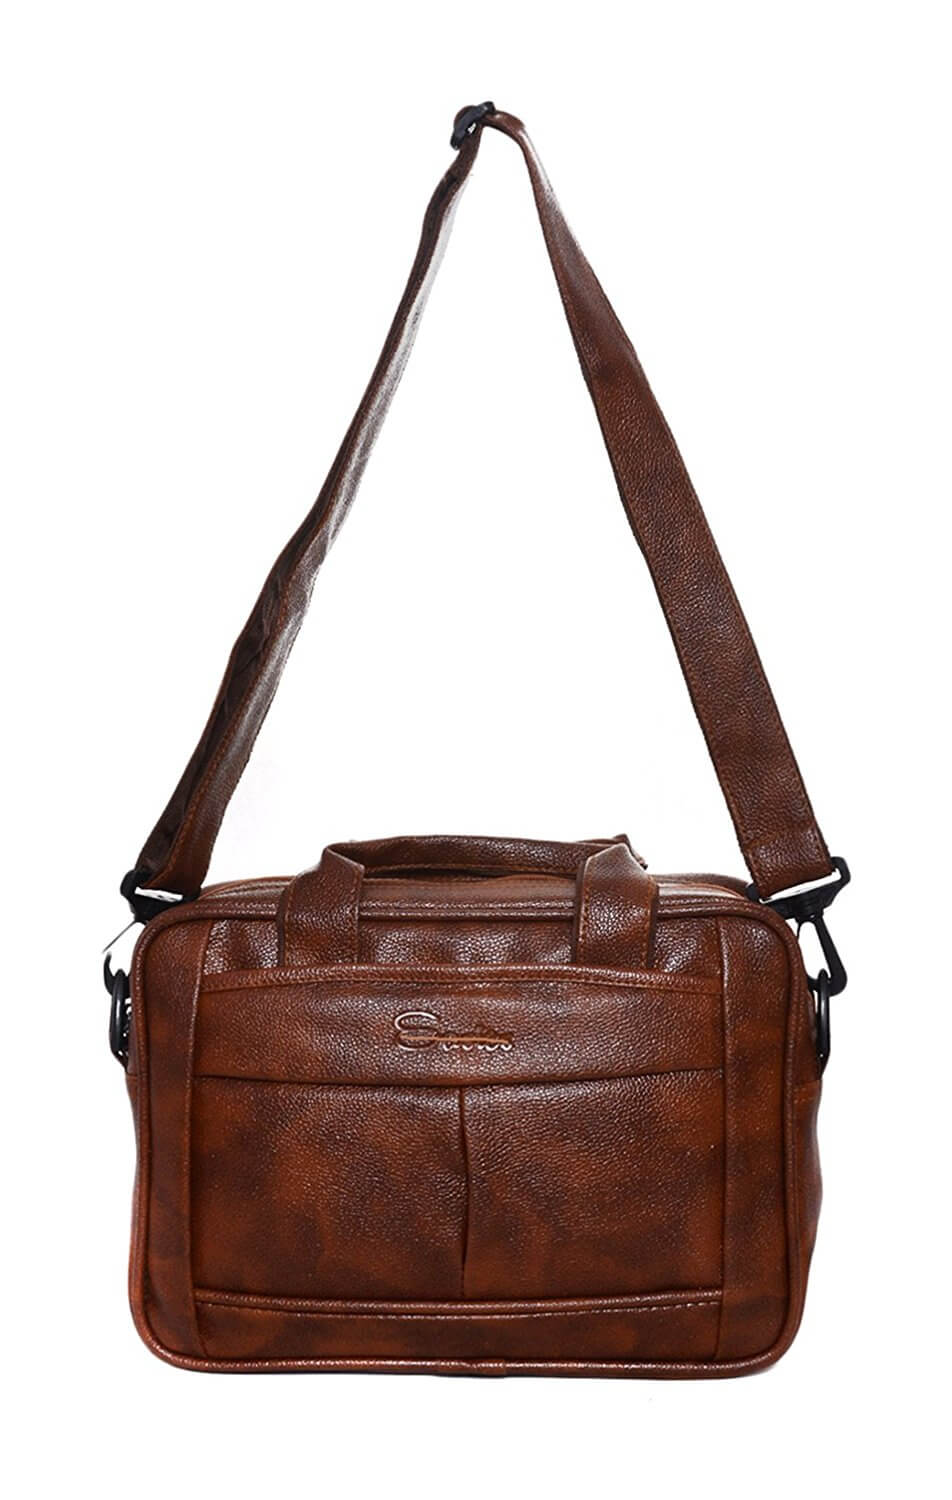 Rehan's Leather 25 Liters Brown Messenger Bag